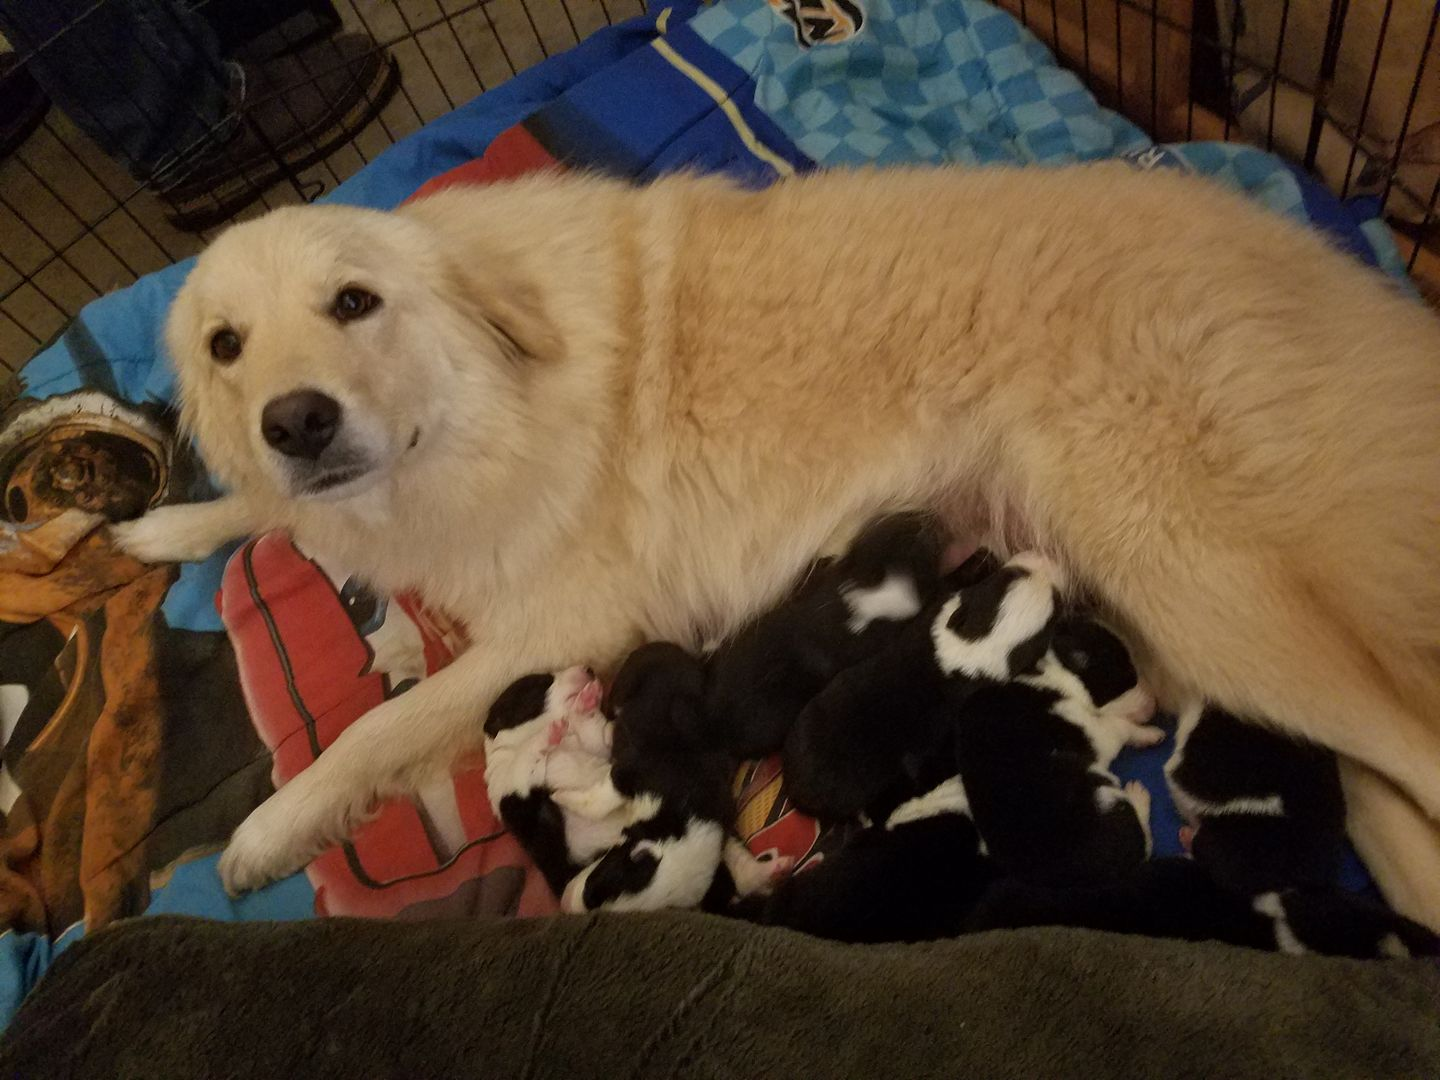 Grieving Dog Who Lost Her Puppies In Fire Finds Comfort With Orphan Pups In Need of a Mother